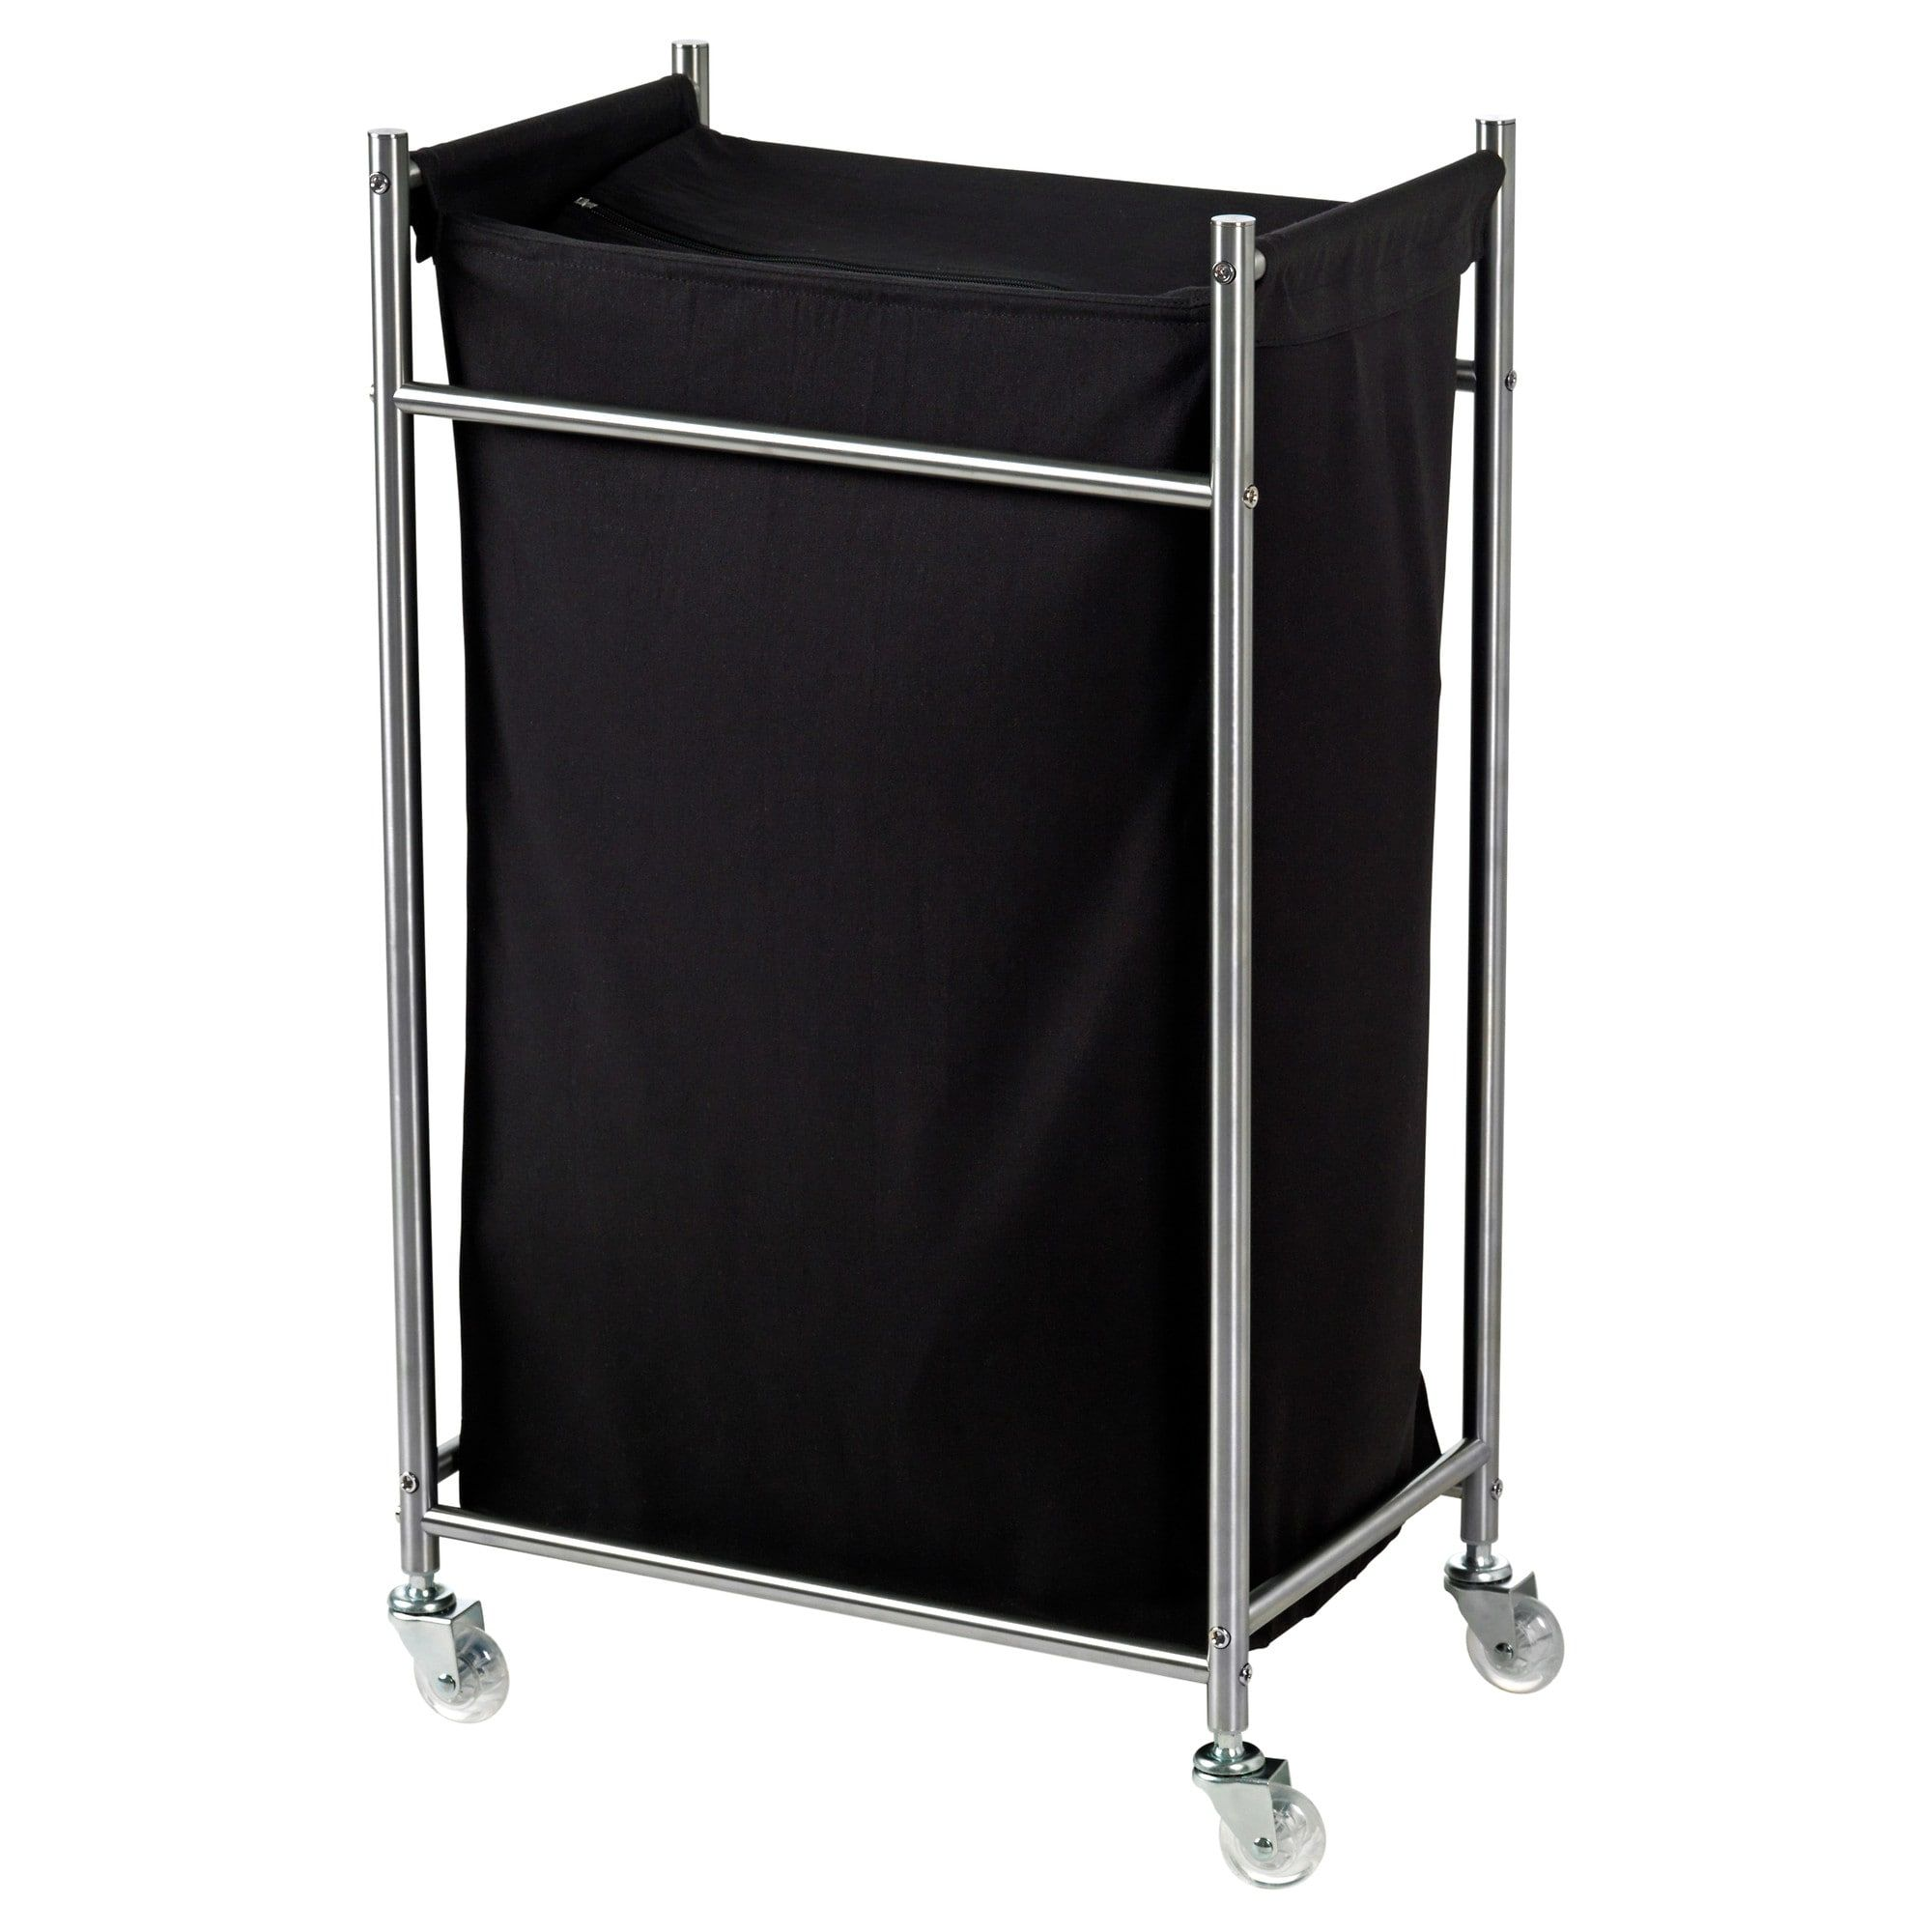 GRUNDTAL Laundry Bin With Casters, Stainless Steel, Black